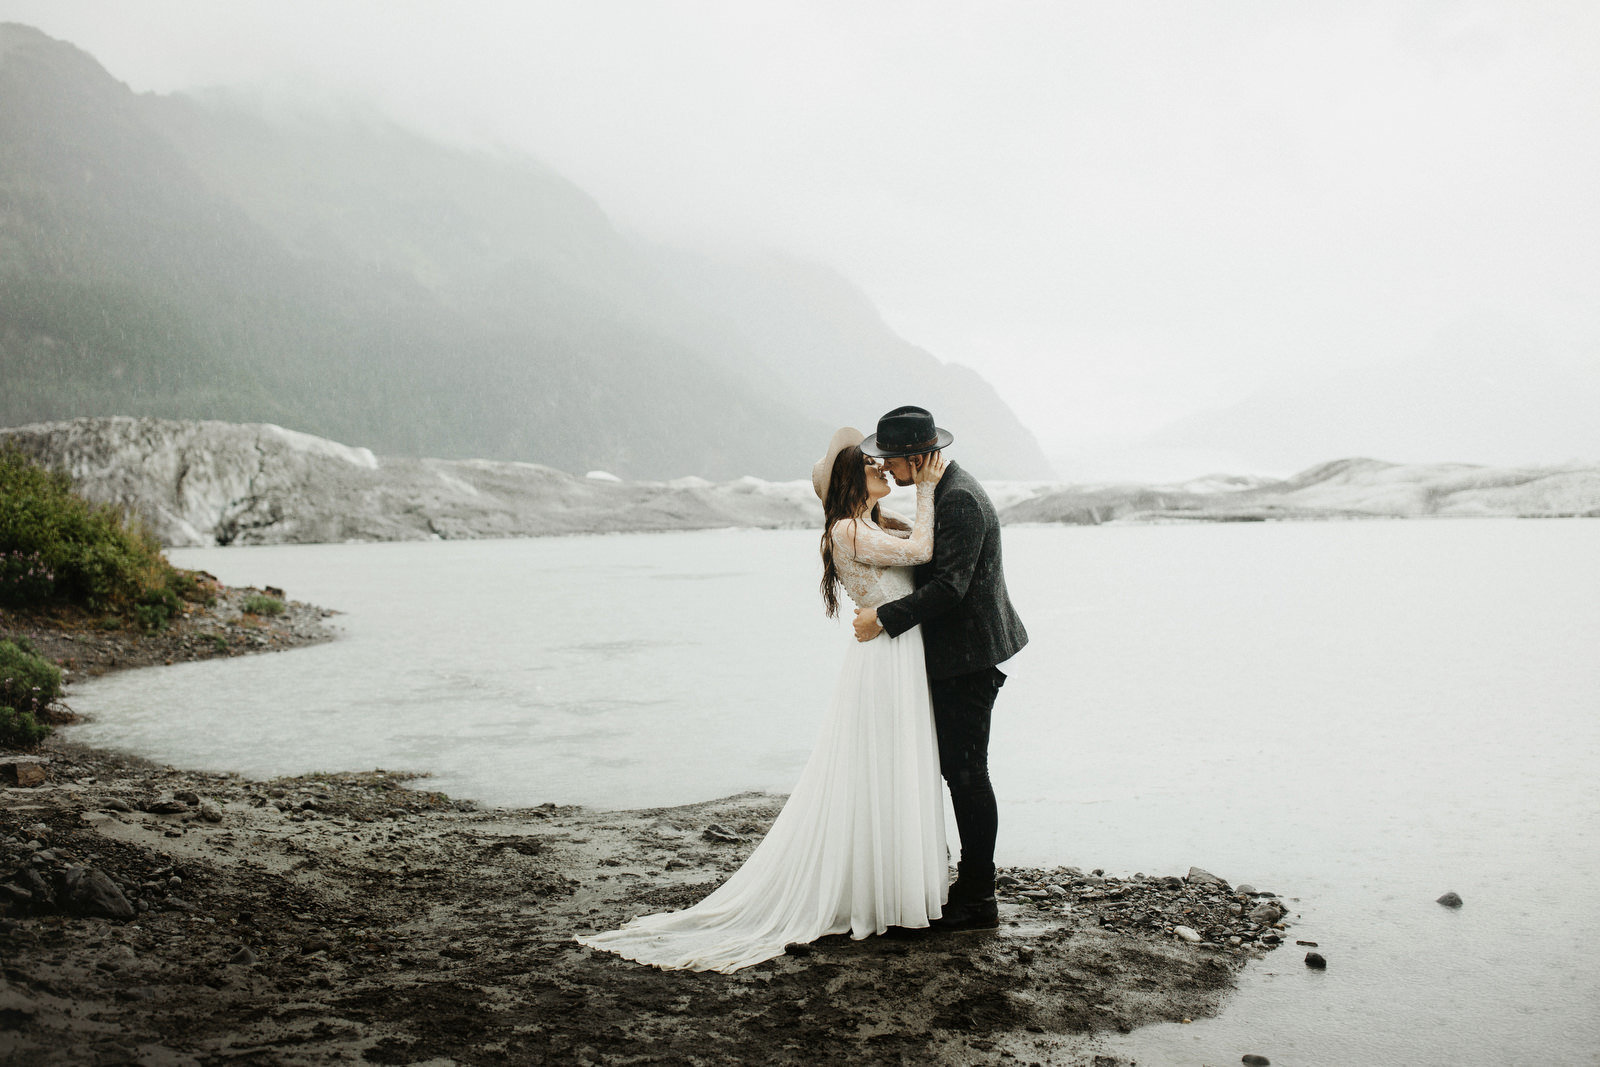 athena-and-camron-alaska-elopement-wedding-inspiration-india-earl-athena-grace-glacier-lagoon-wedding95